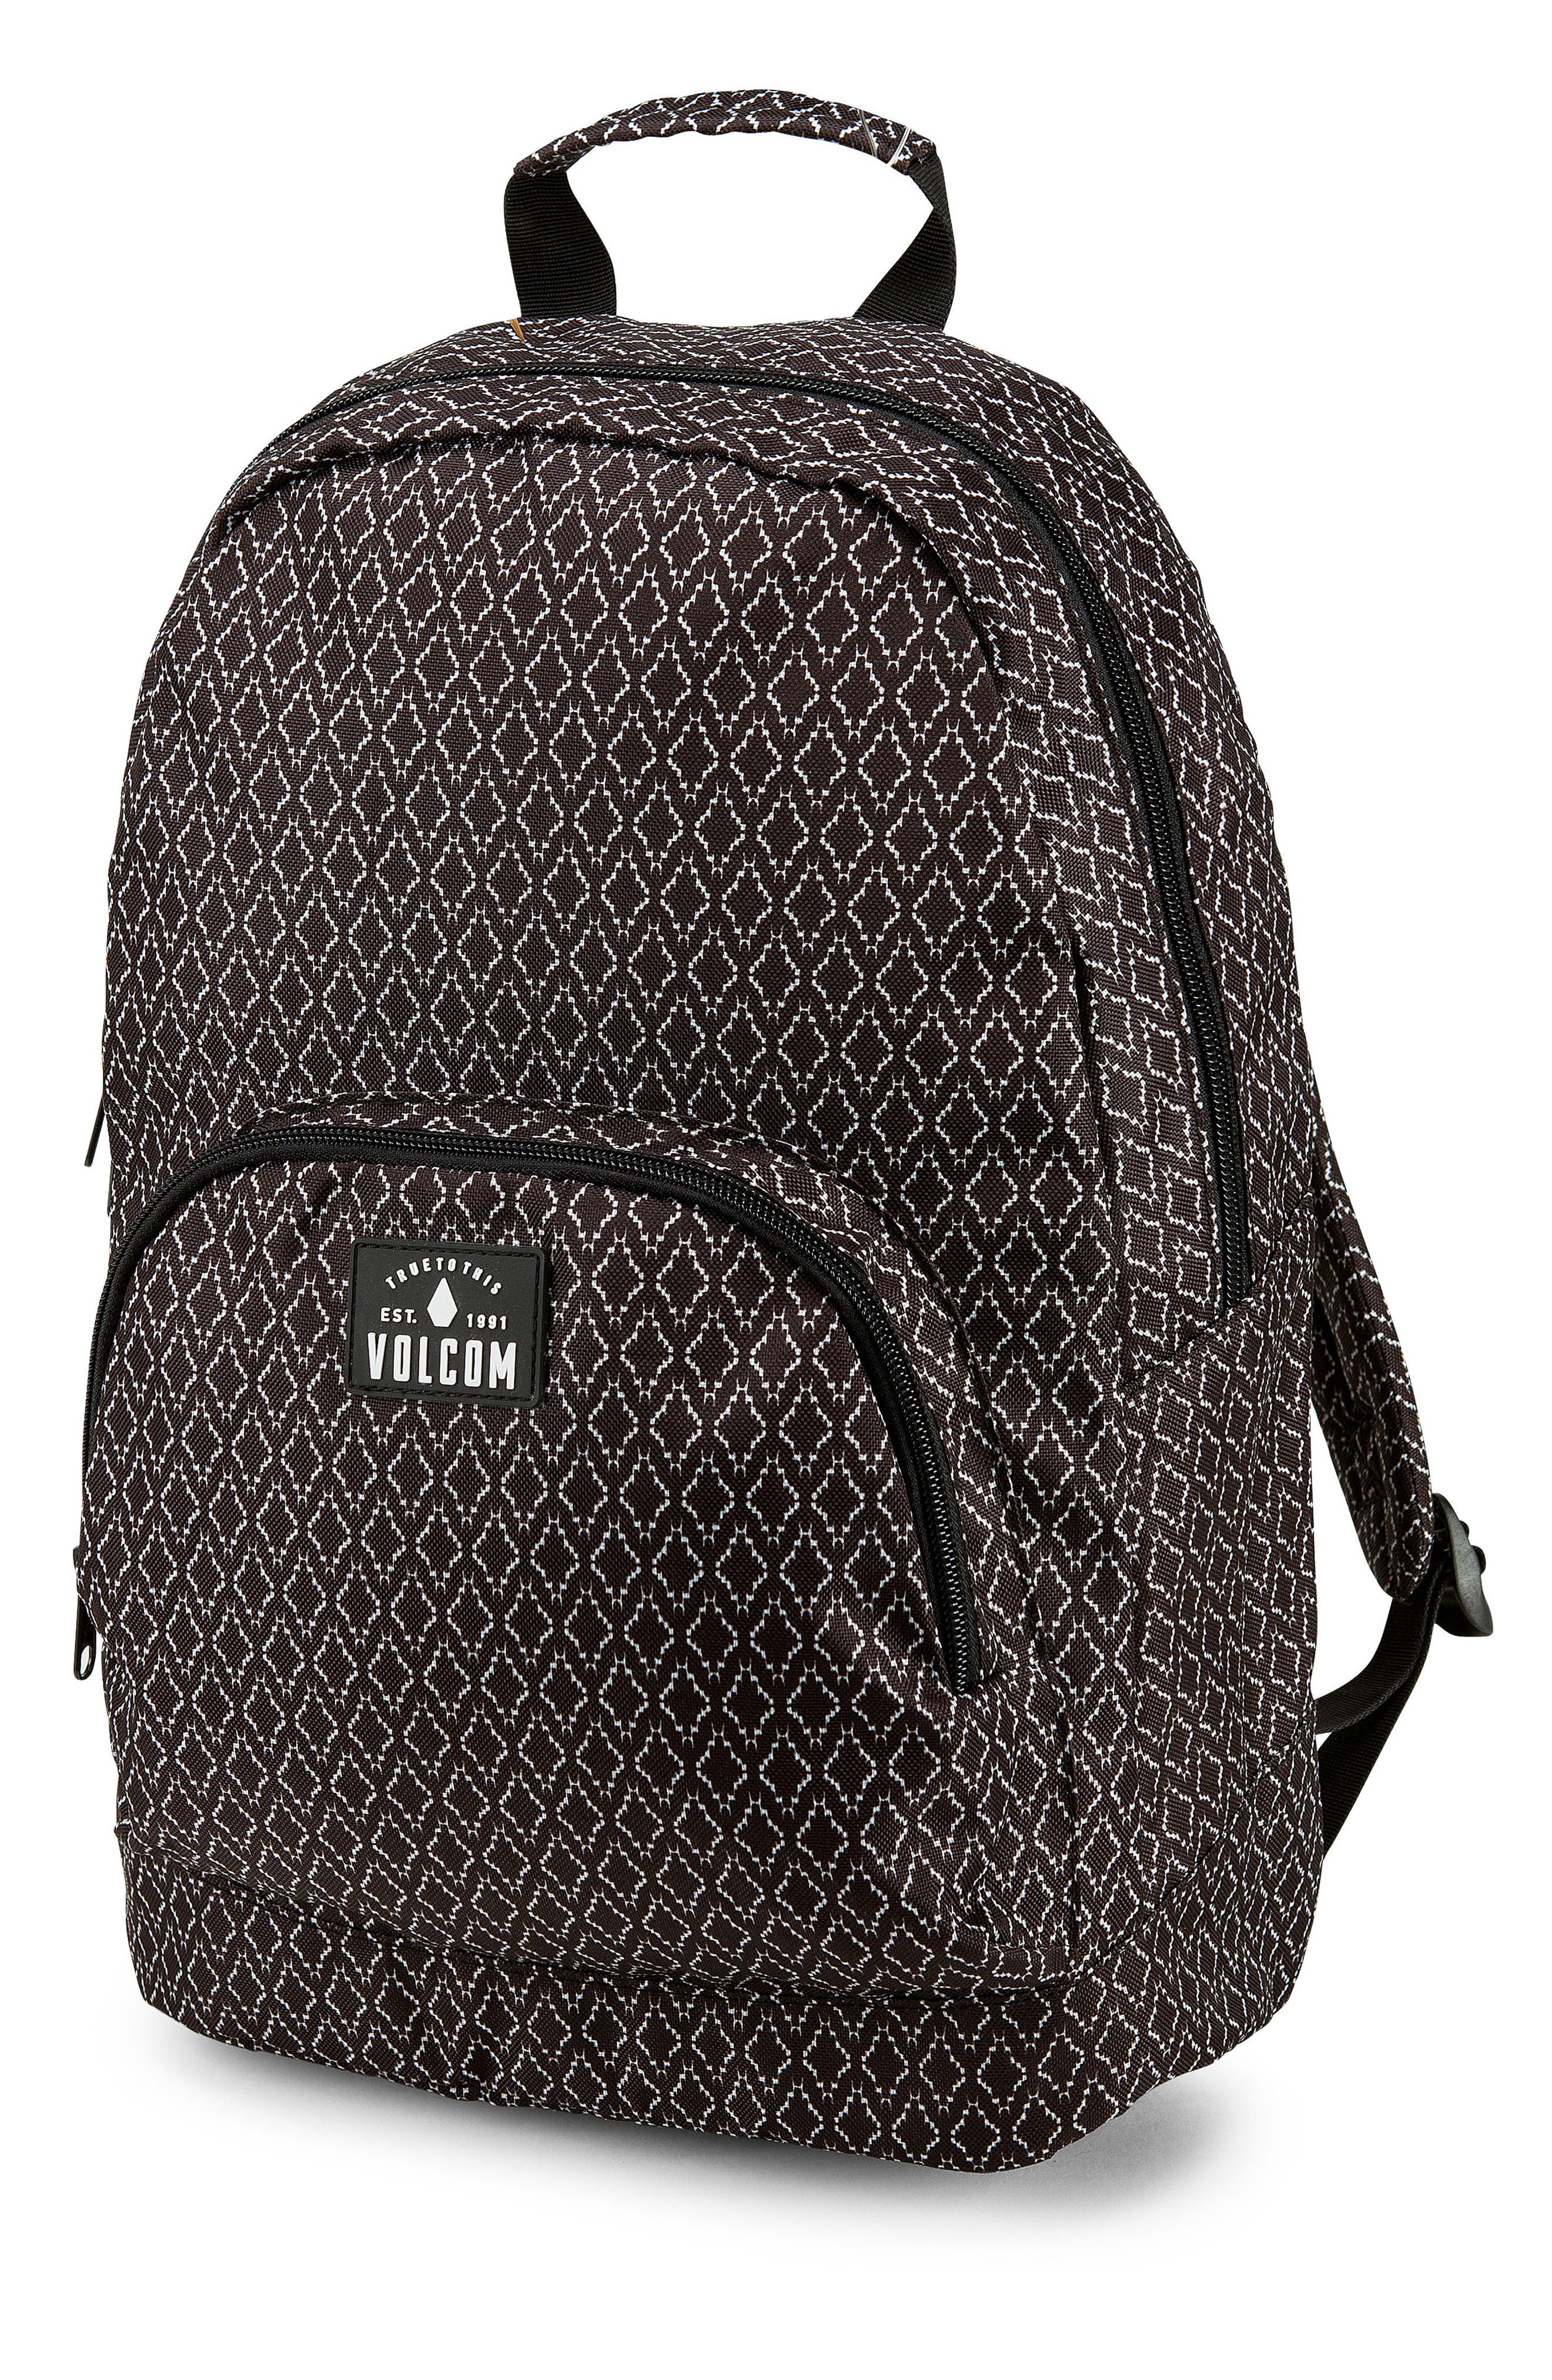 Volcom Schoolyard Backpack